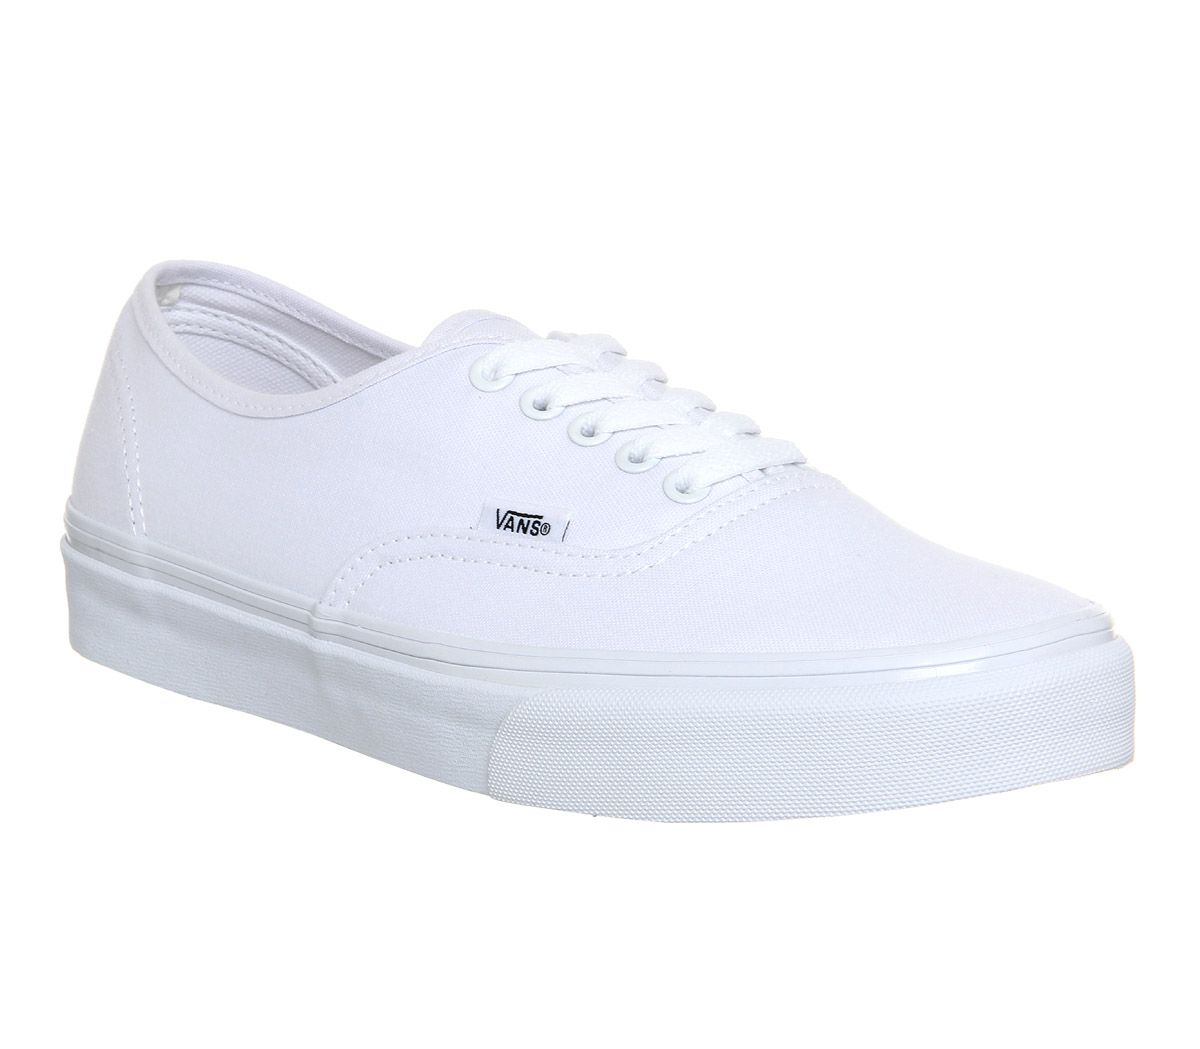 69a76f3d6e Vans Authentic True White - Unisex Sports